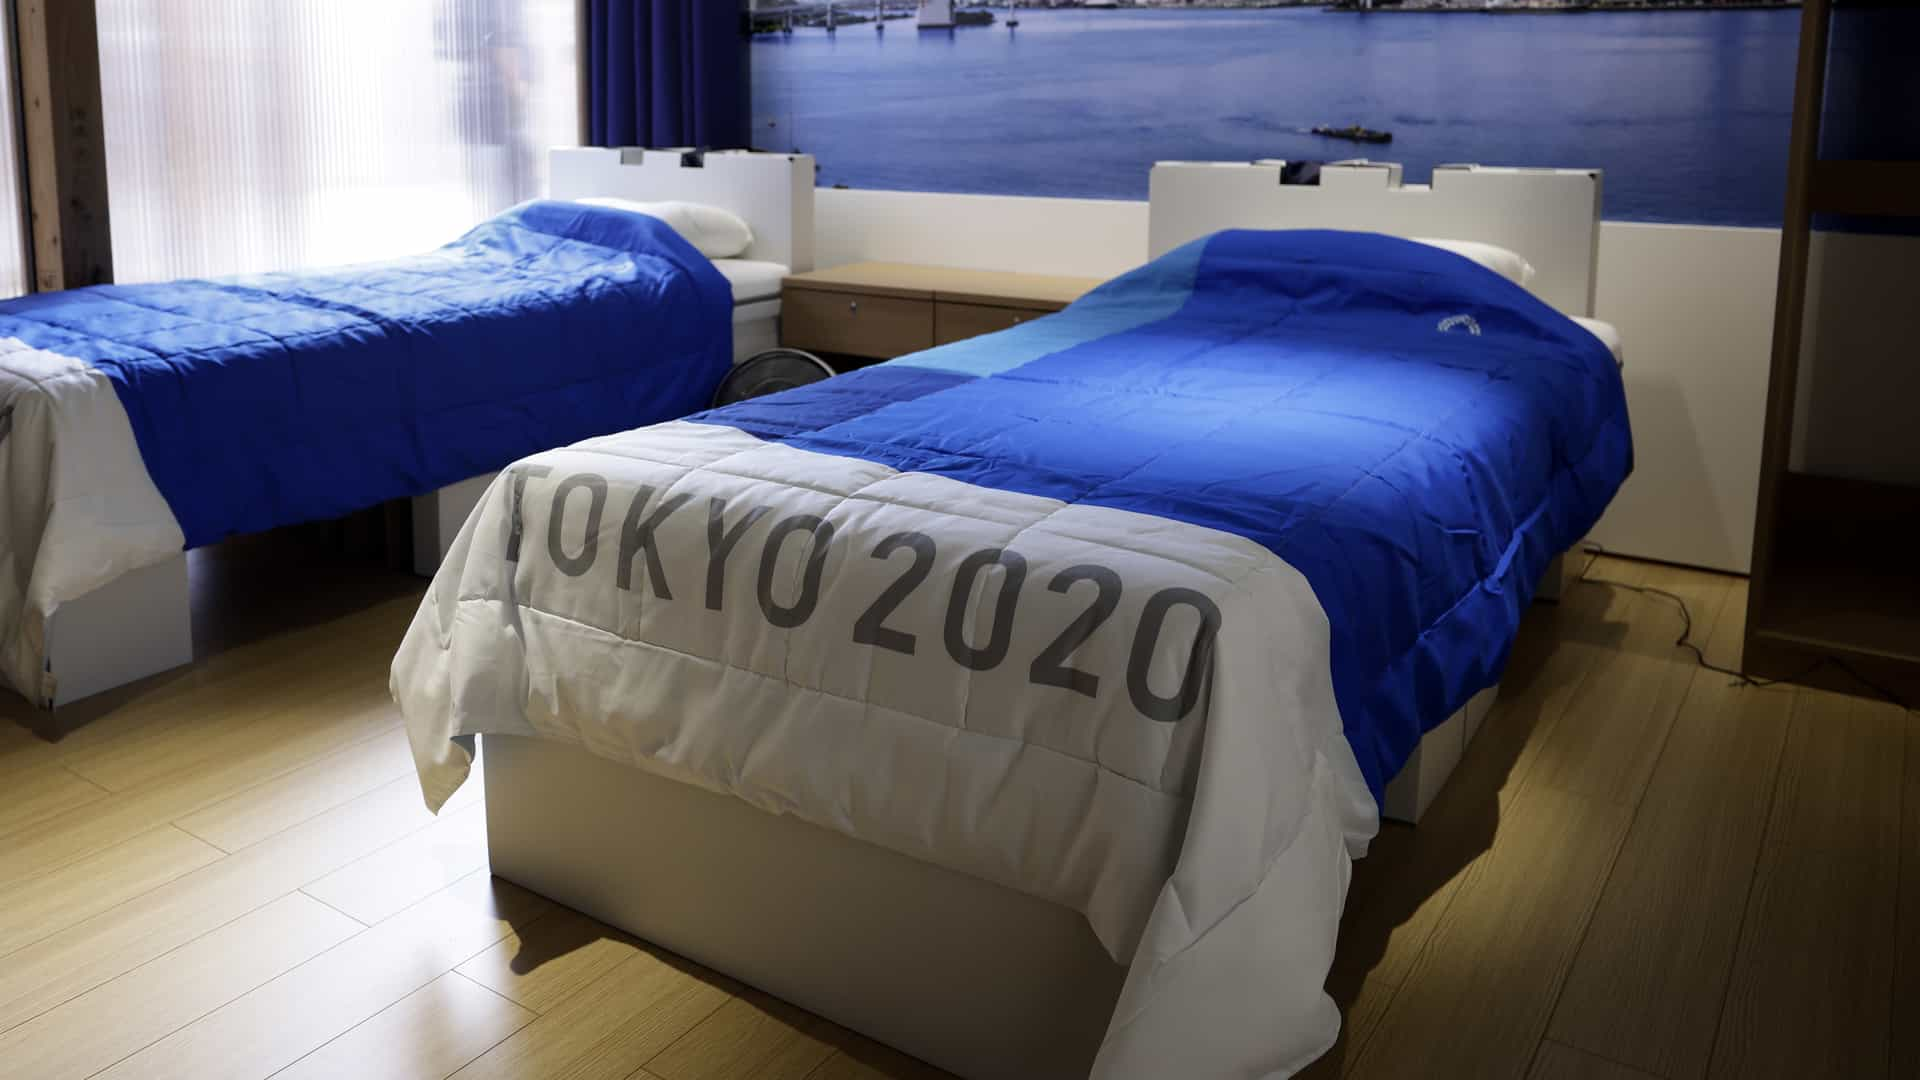 Image for Plastic podiums, recycled medals, cardboard beds part of Tokyo Games' sustainability plan